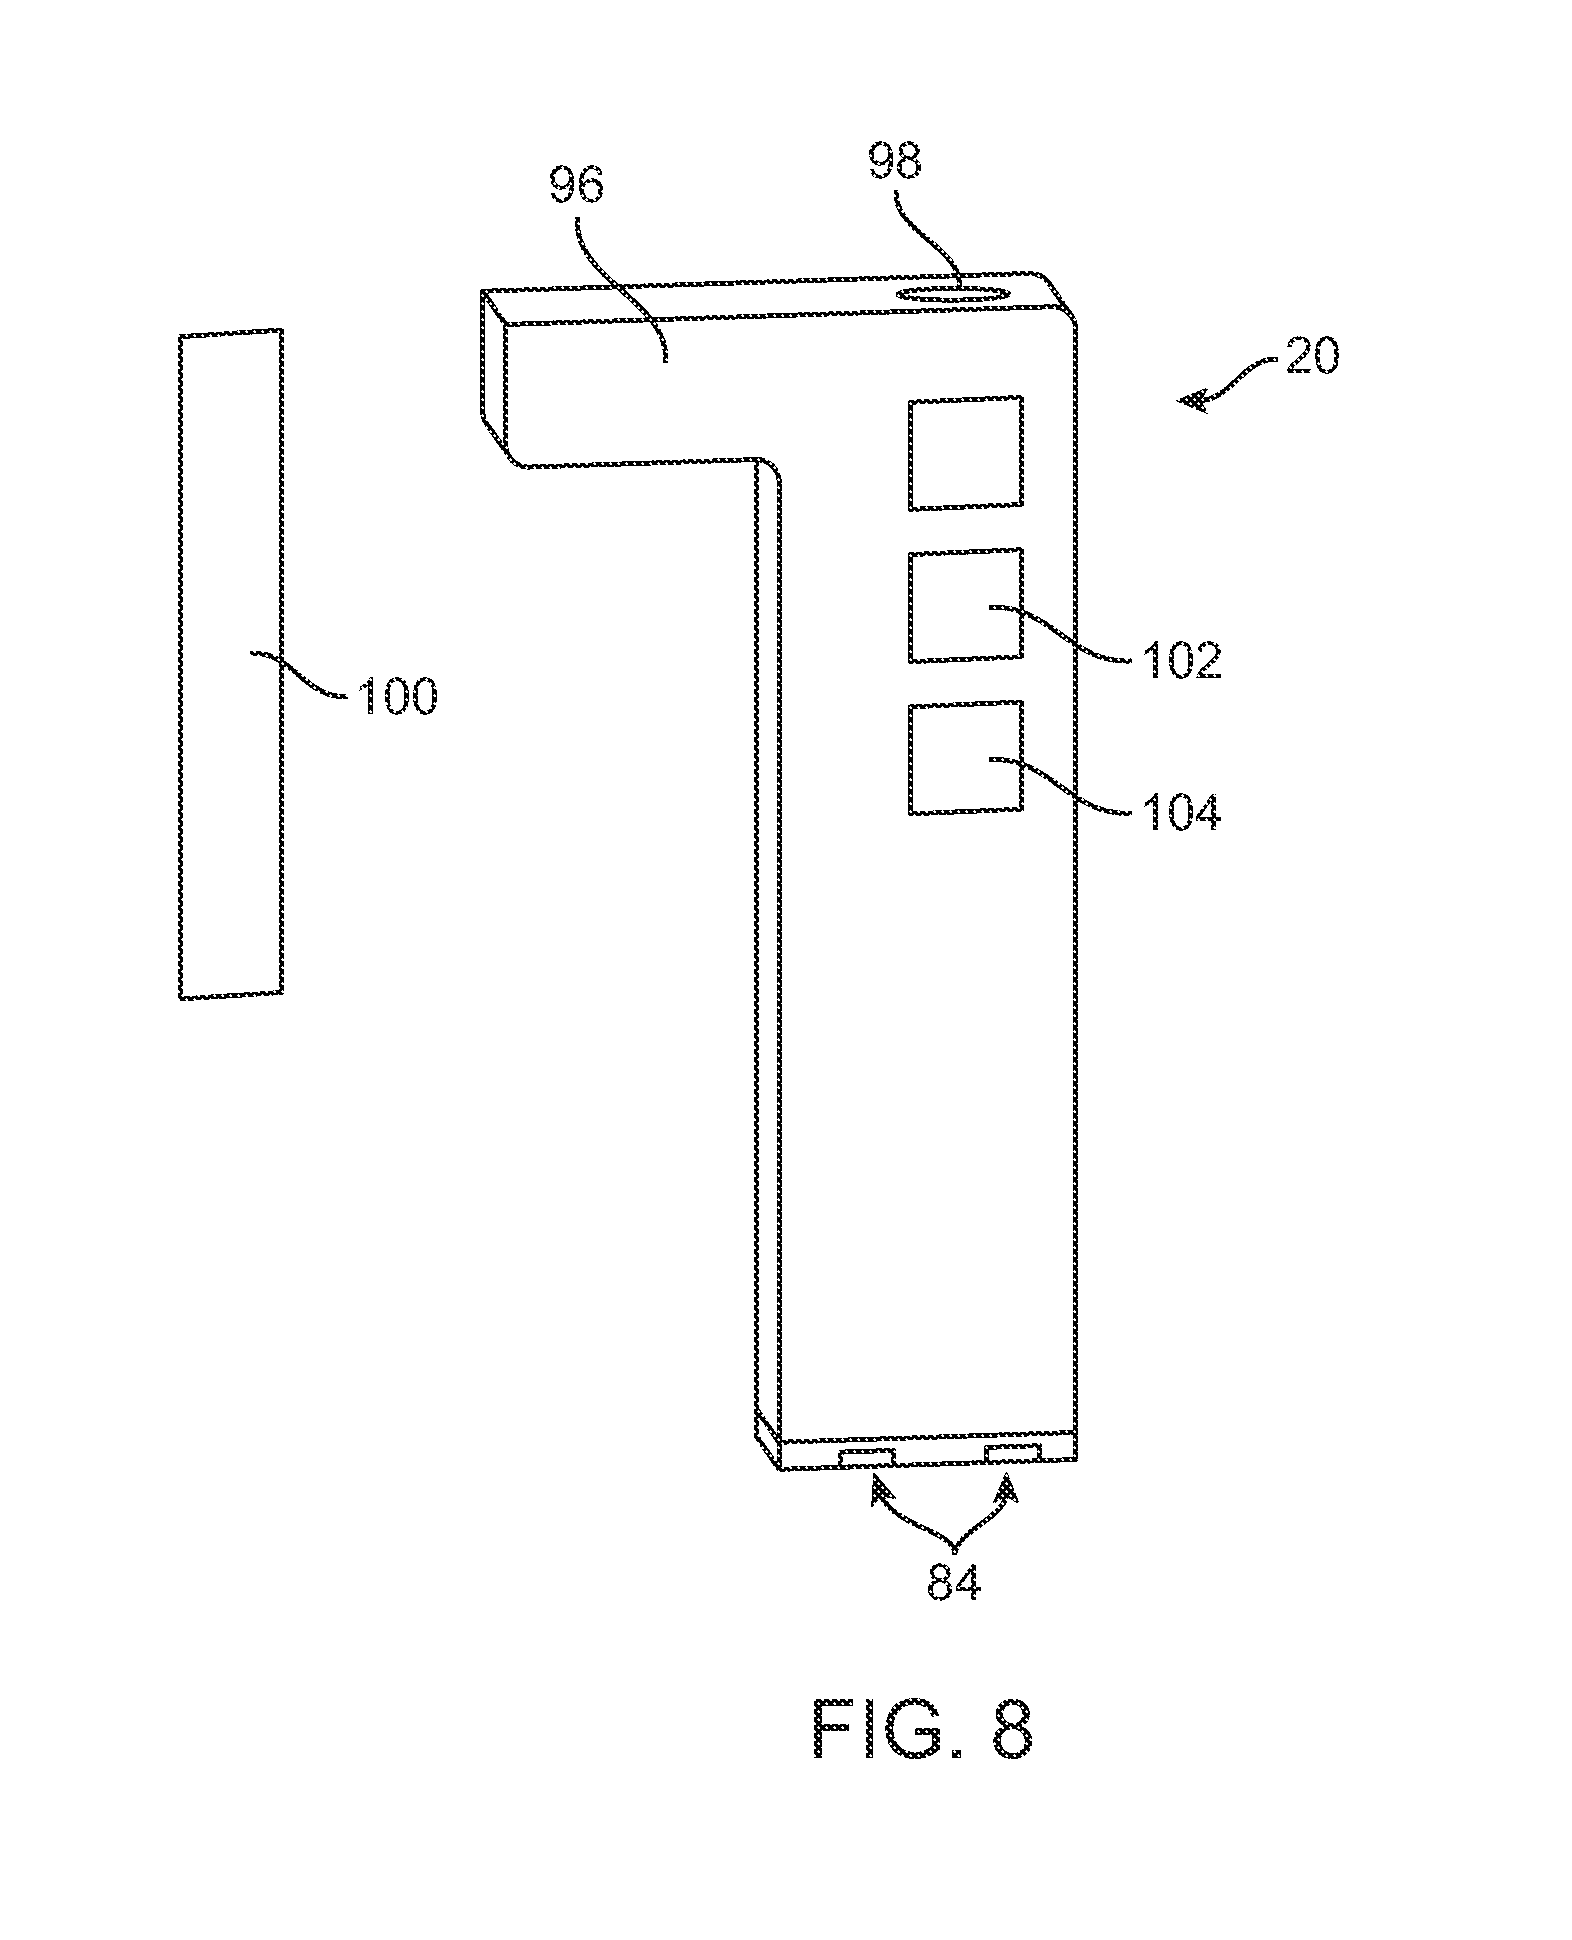 Us8287495b2 Infusion Pump System With Disposable Cartridge Having Circuit Moreover Taps Control Additionally Volume Controller Pressure Venting And Feedback Google Patents